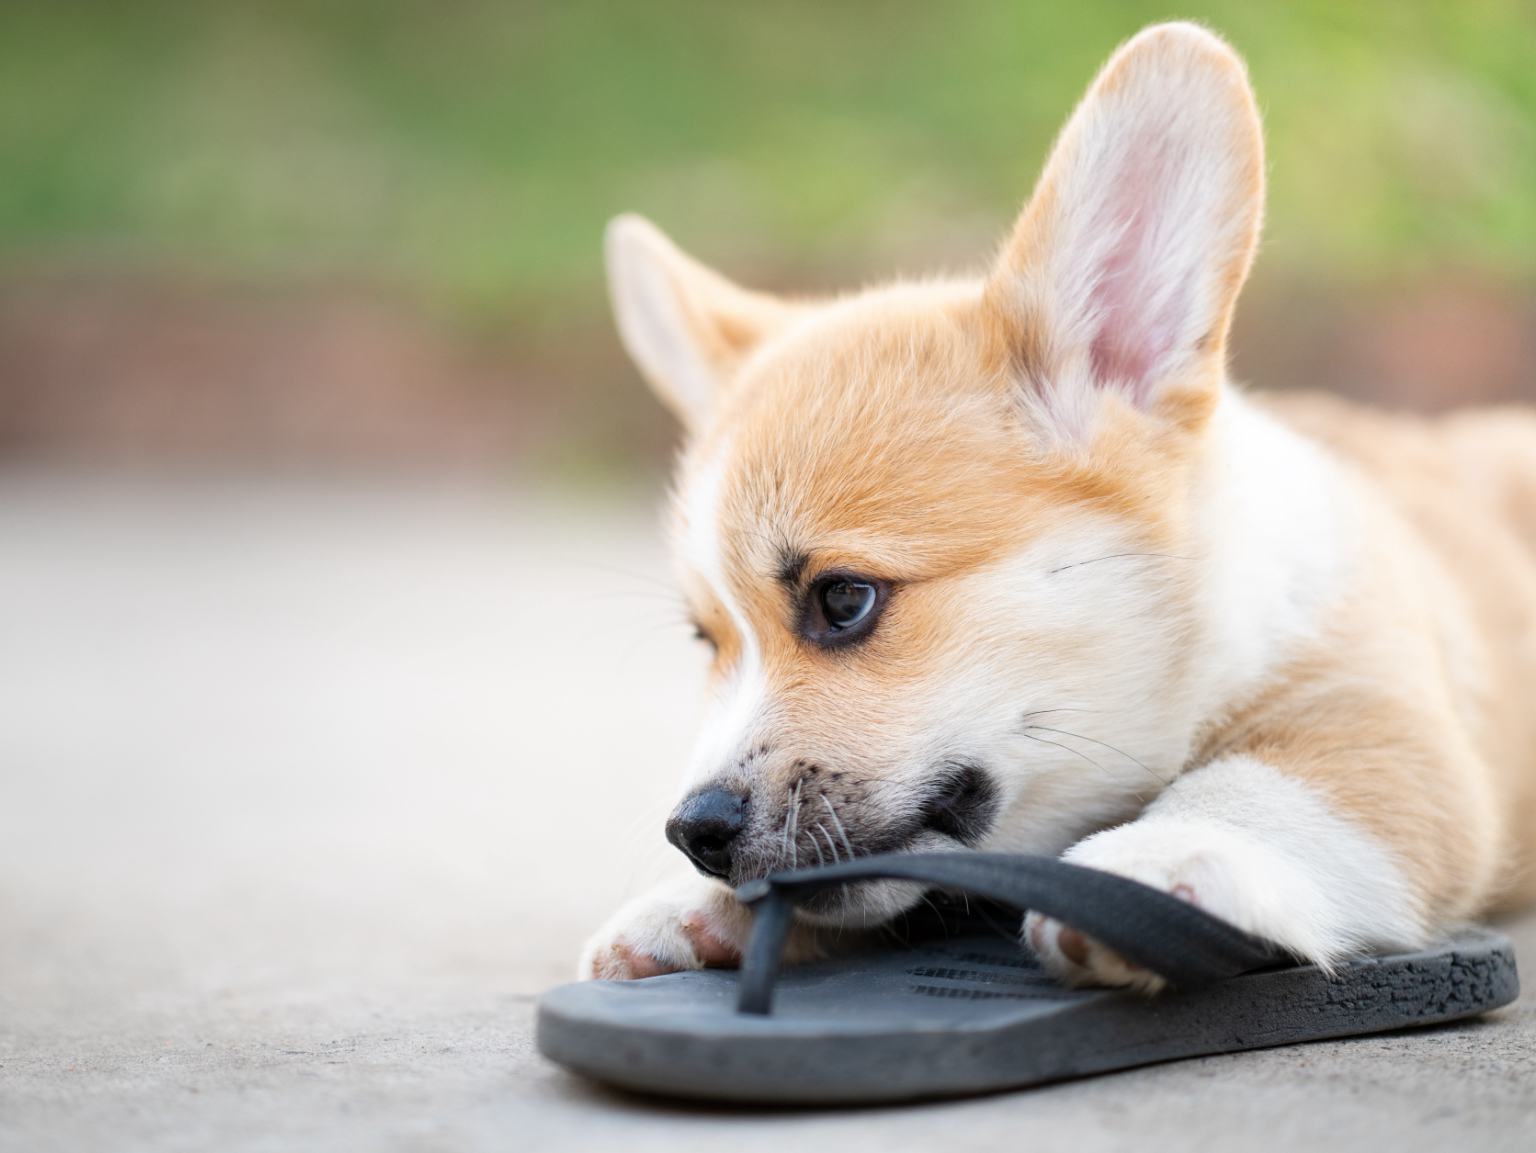 A Corgi puppy nibbling on a black sandal